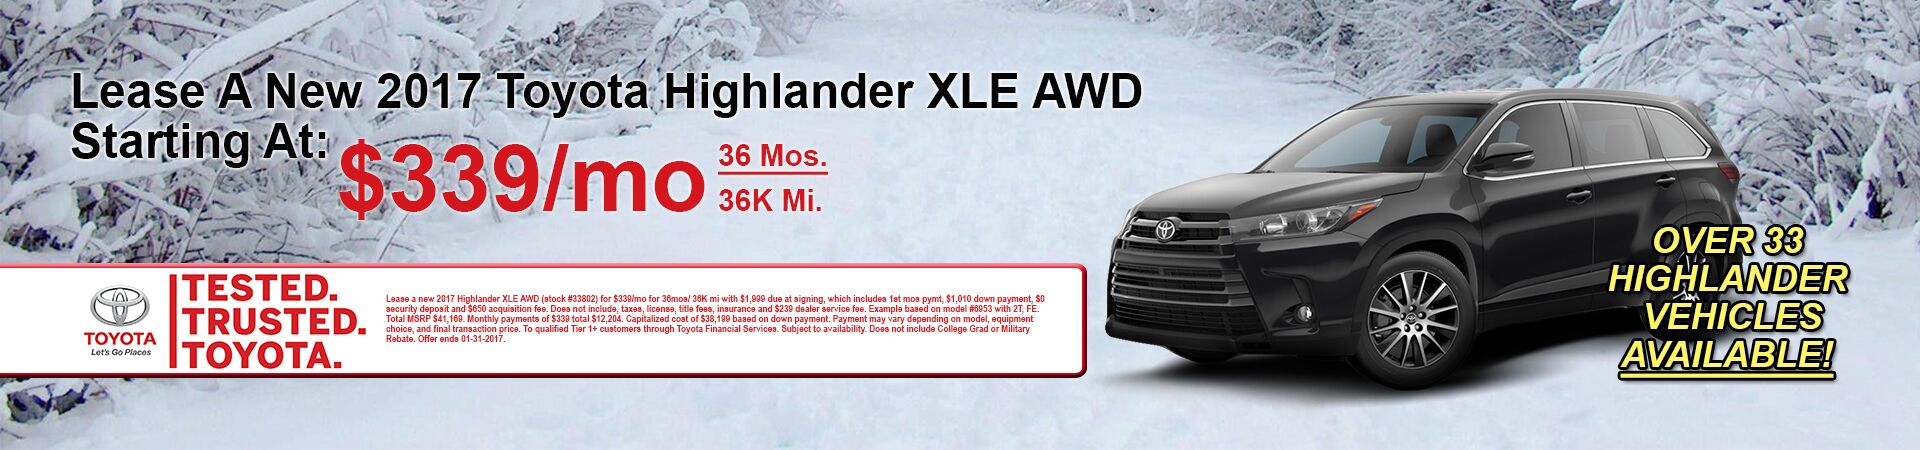 January Highlander Specials at Andrew Toyota